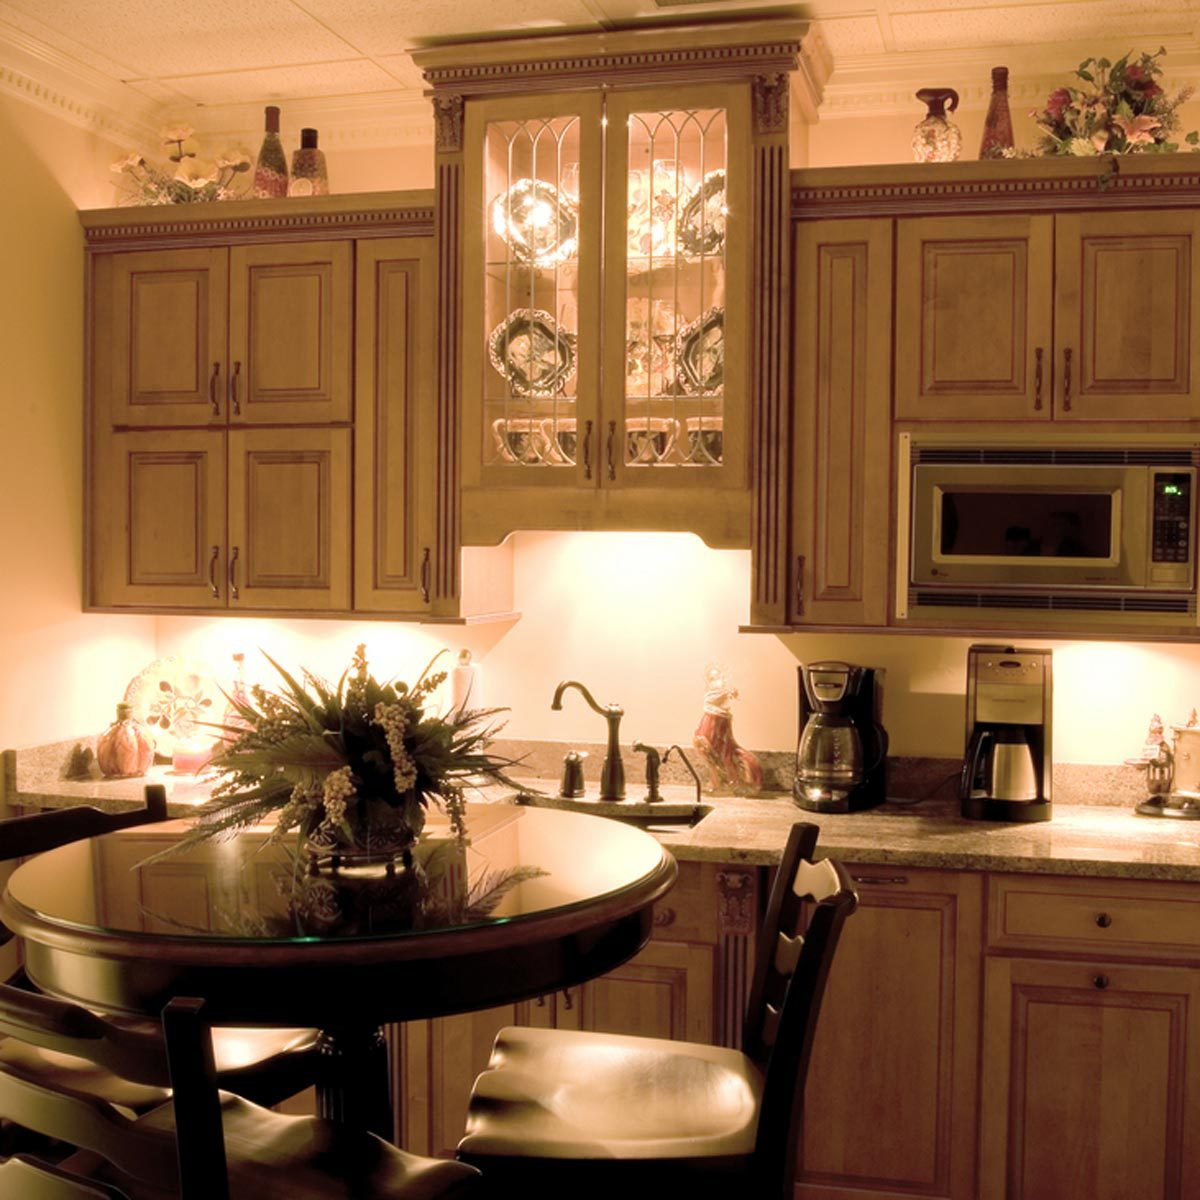 lighting in kitchen. Add Depth With Accents Lighting In Kitchen D